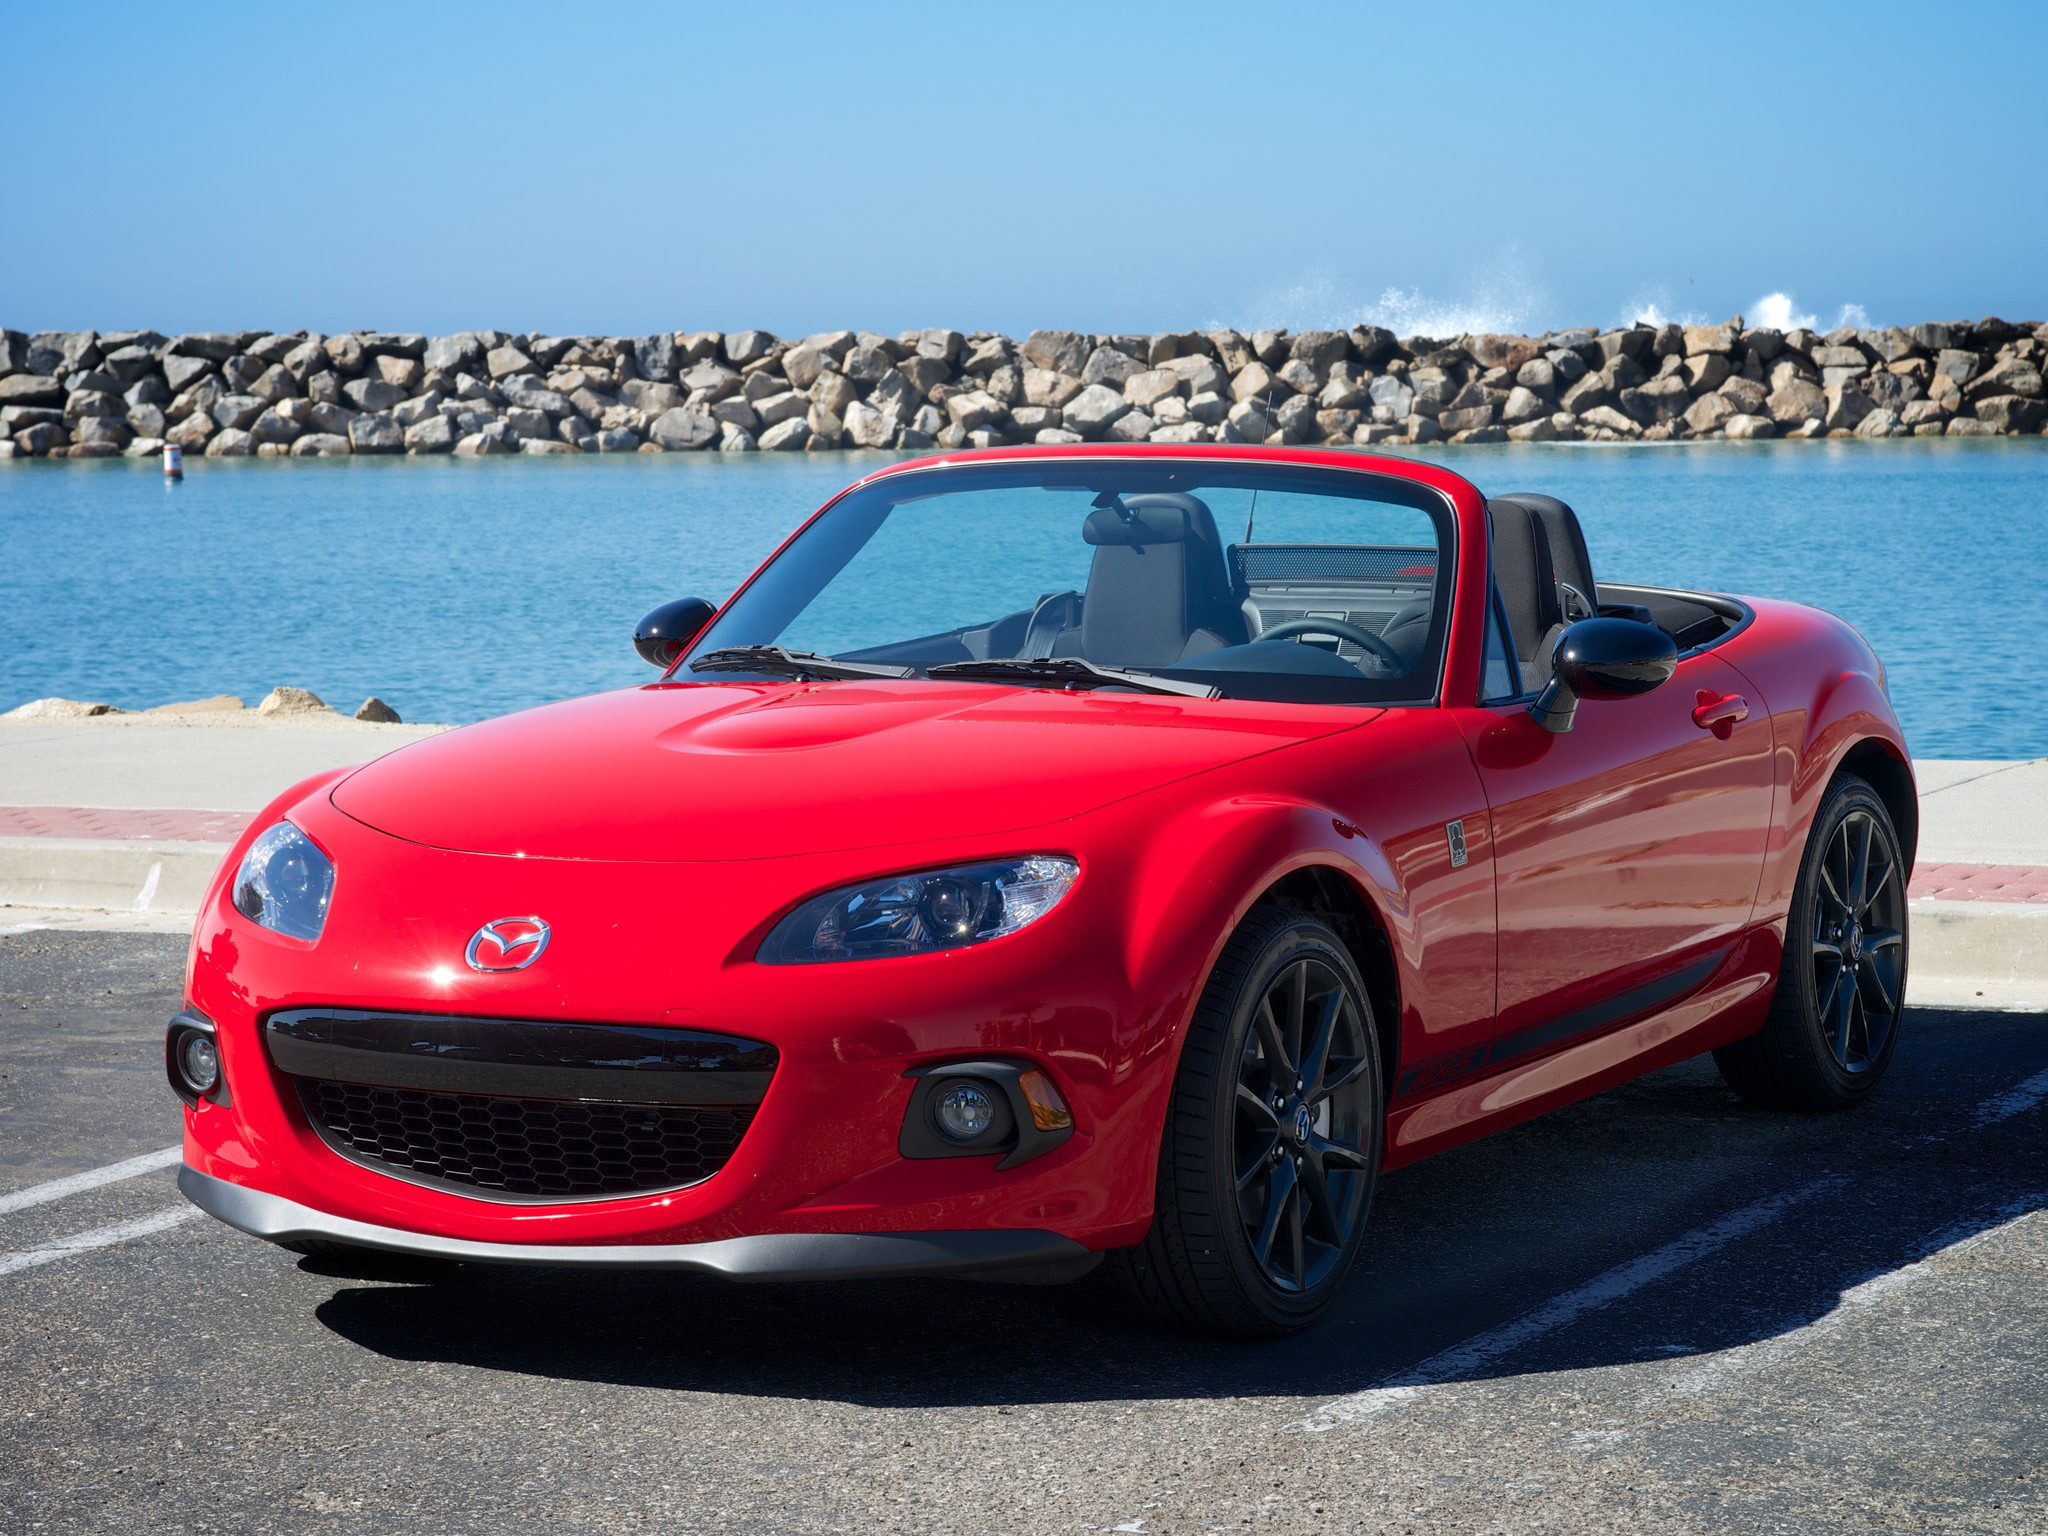 mazda mx 5 miata specs photos 2008 2009 2010 2011 2012 2013 2014 2015 autoevolution. Black Bedroom Furniture Sets. Home Design Ideas